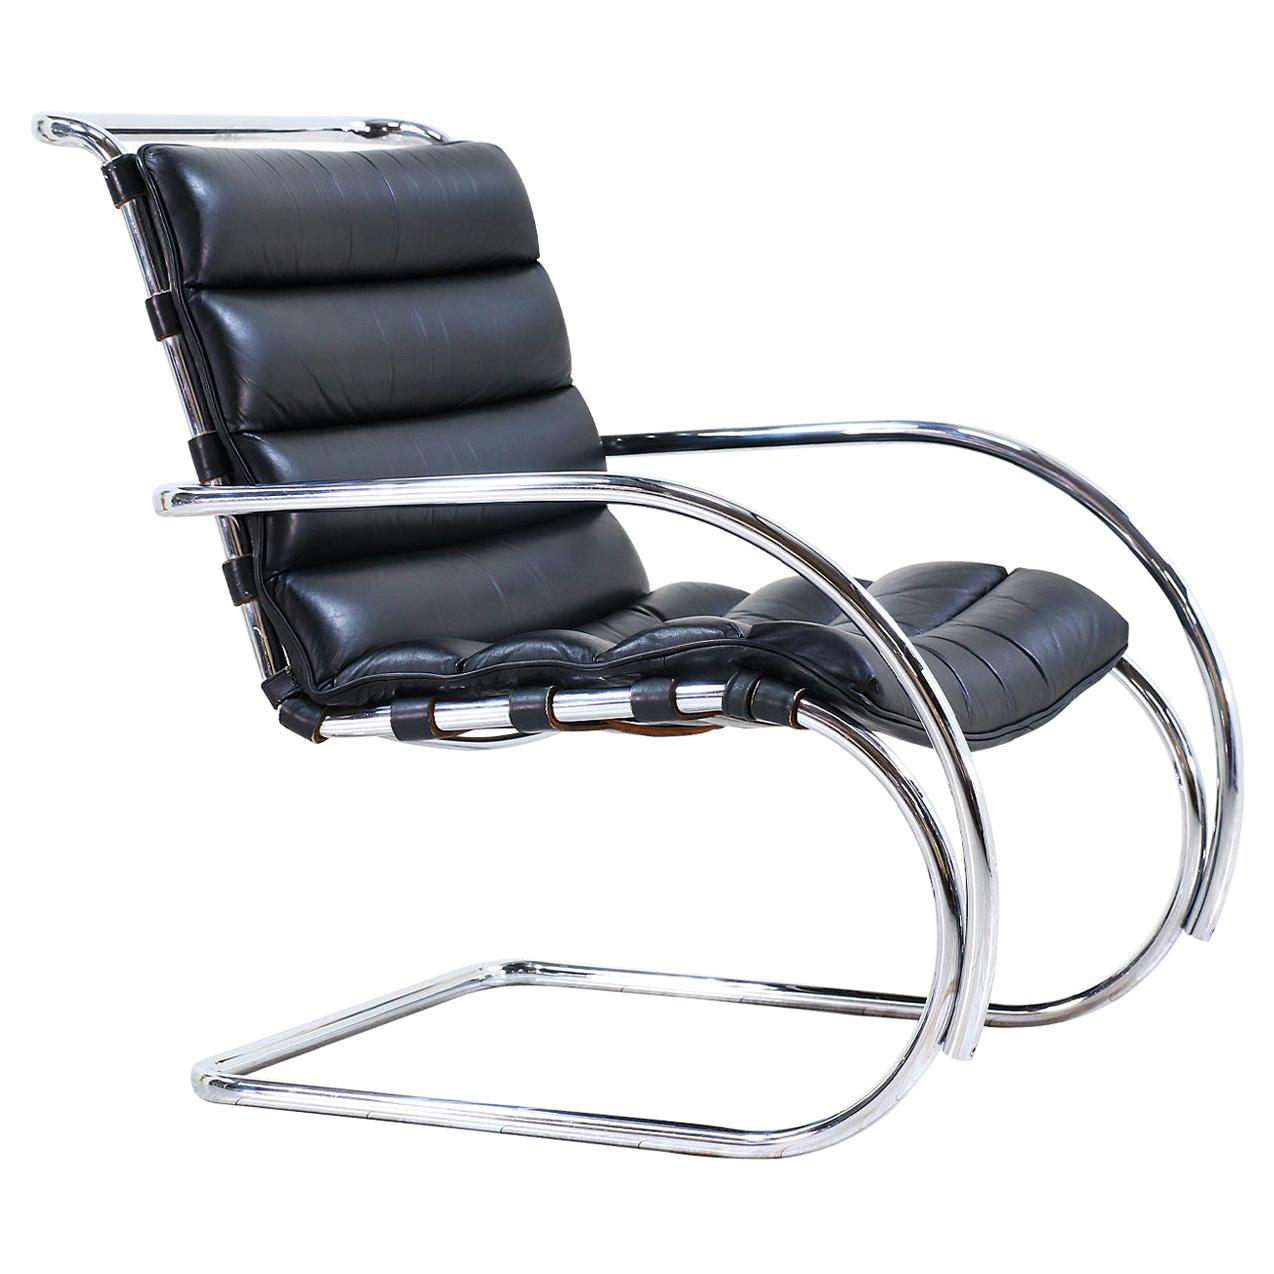 MR Lounge Chair - 248LS